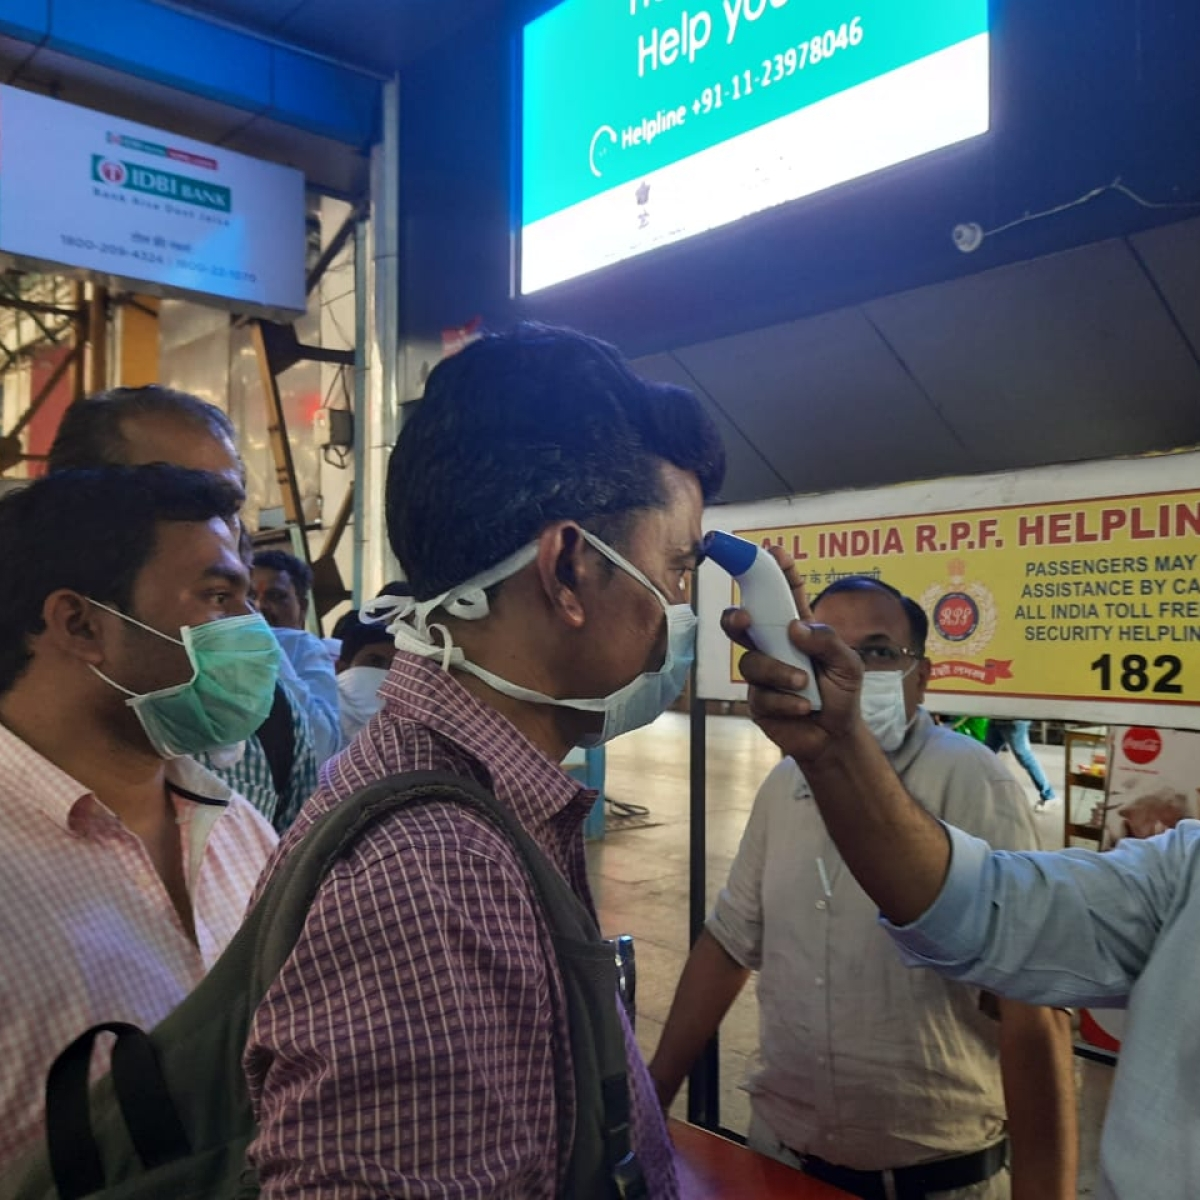 Coronavirus in Mumbai: Central Railway and Western Railways conduct thermal screening at stations